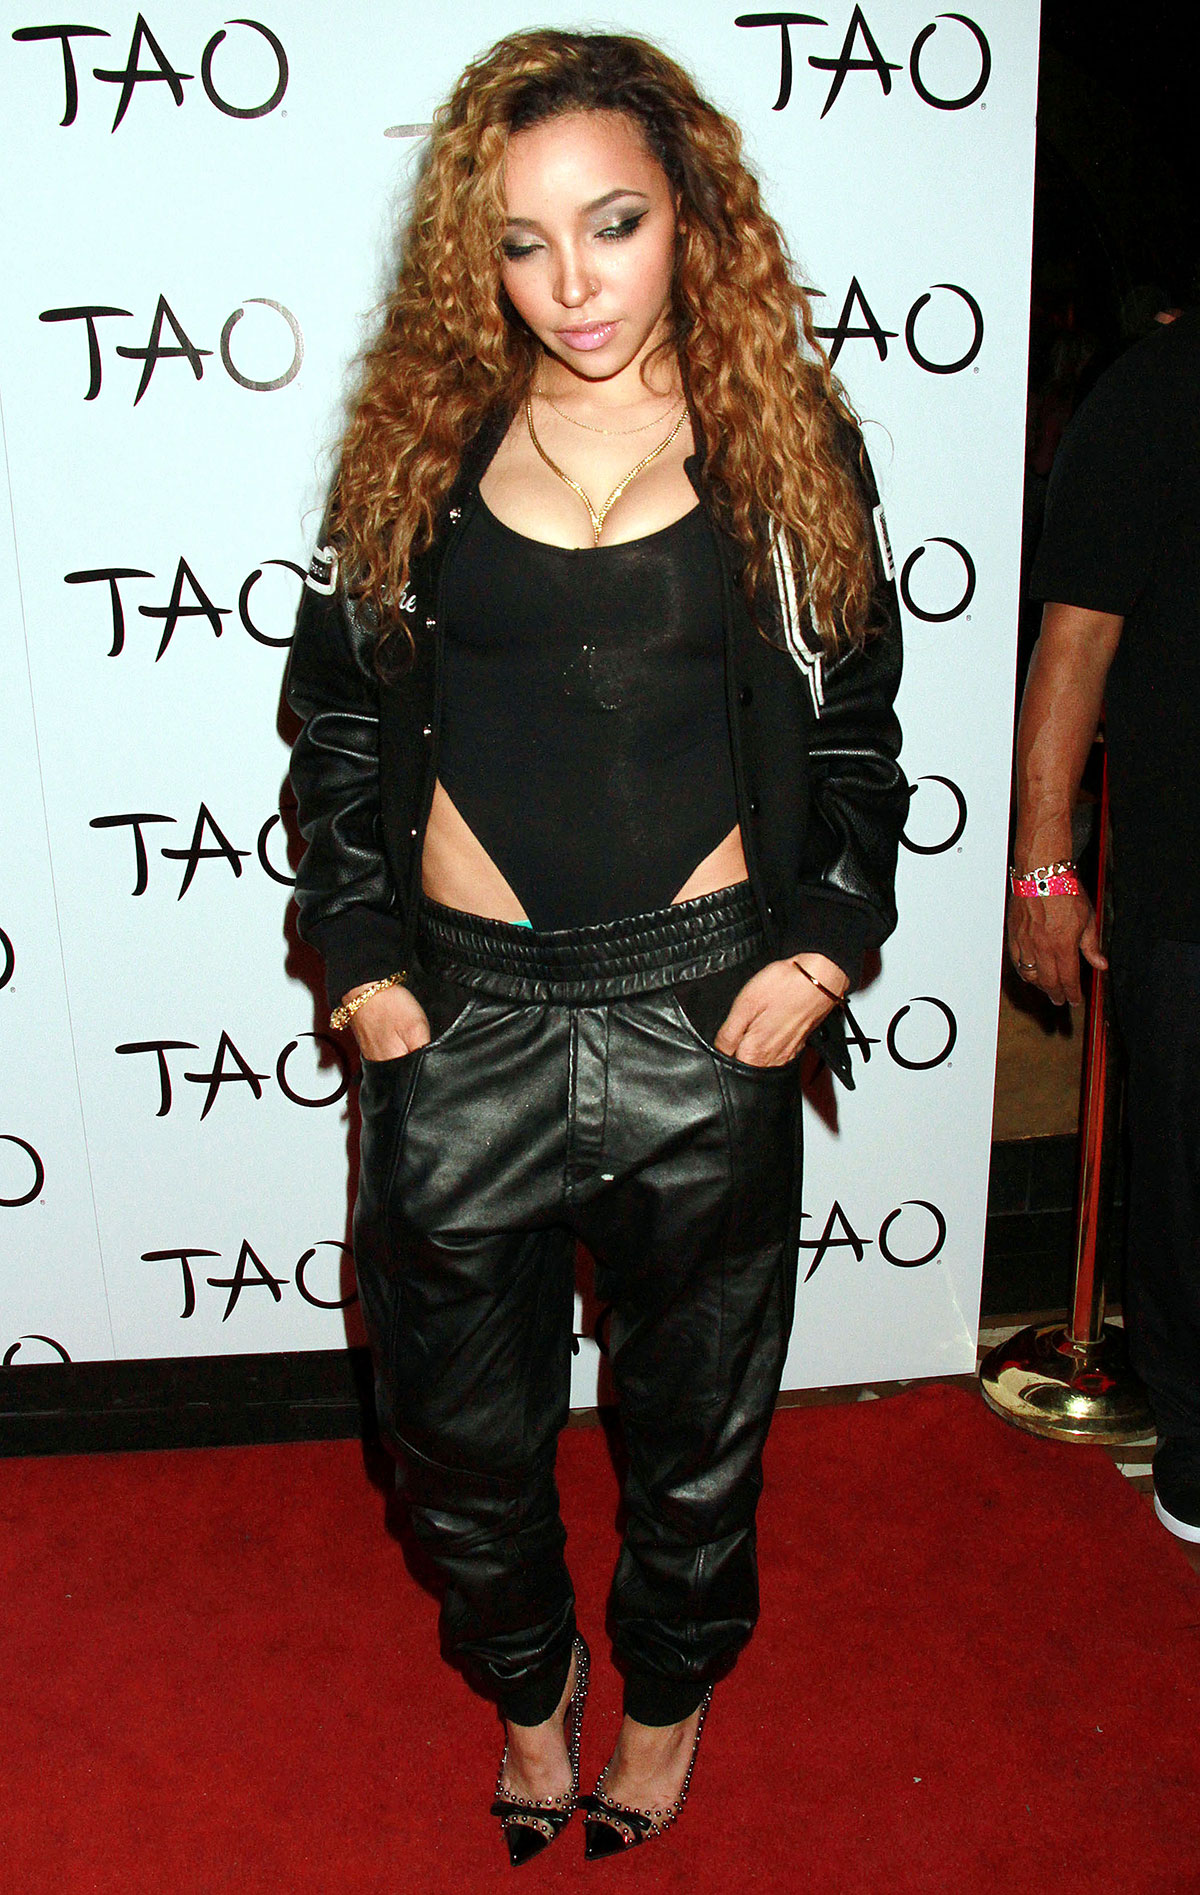 Tinashe attends her album release party at Tao Nightclub